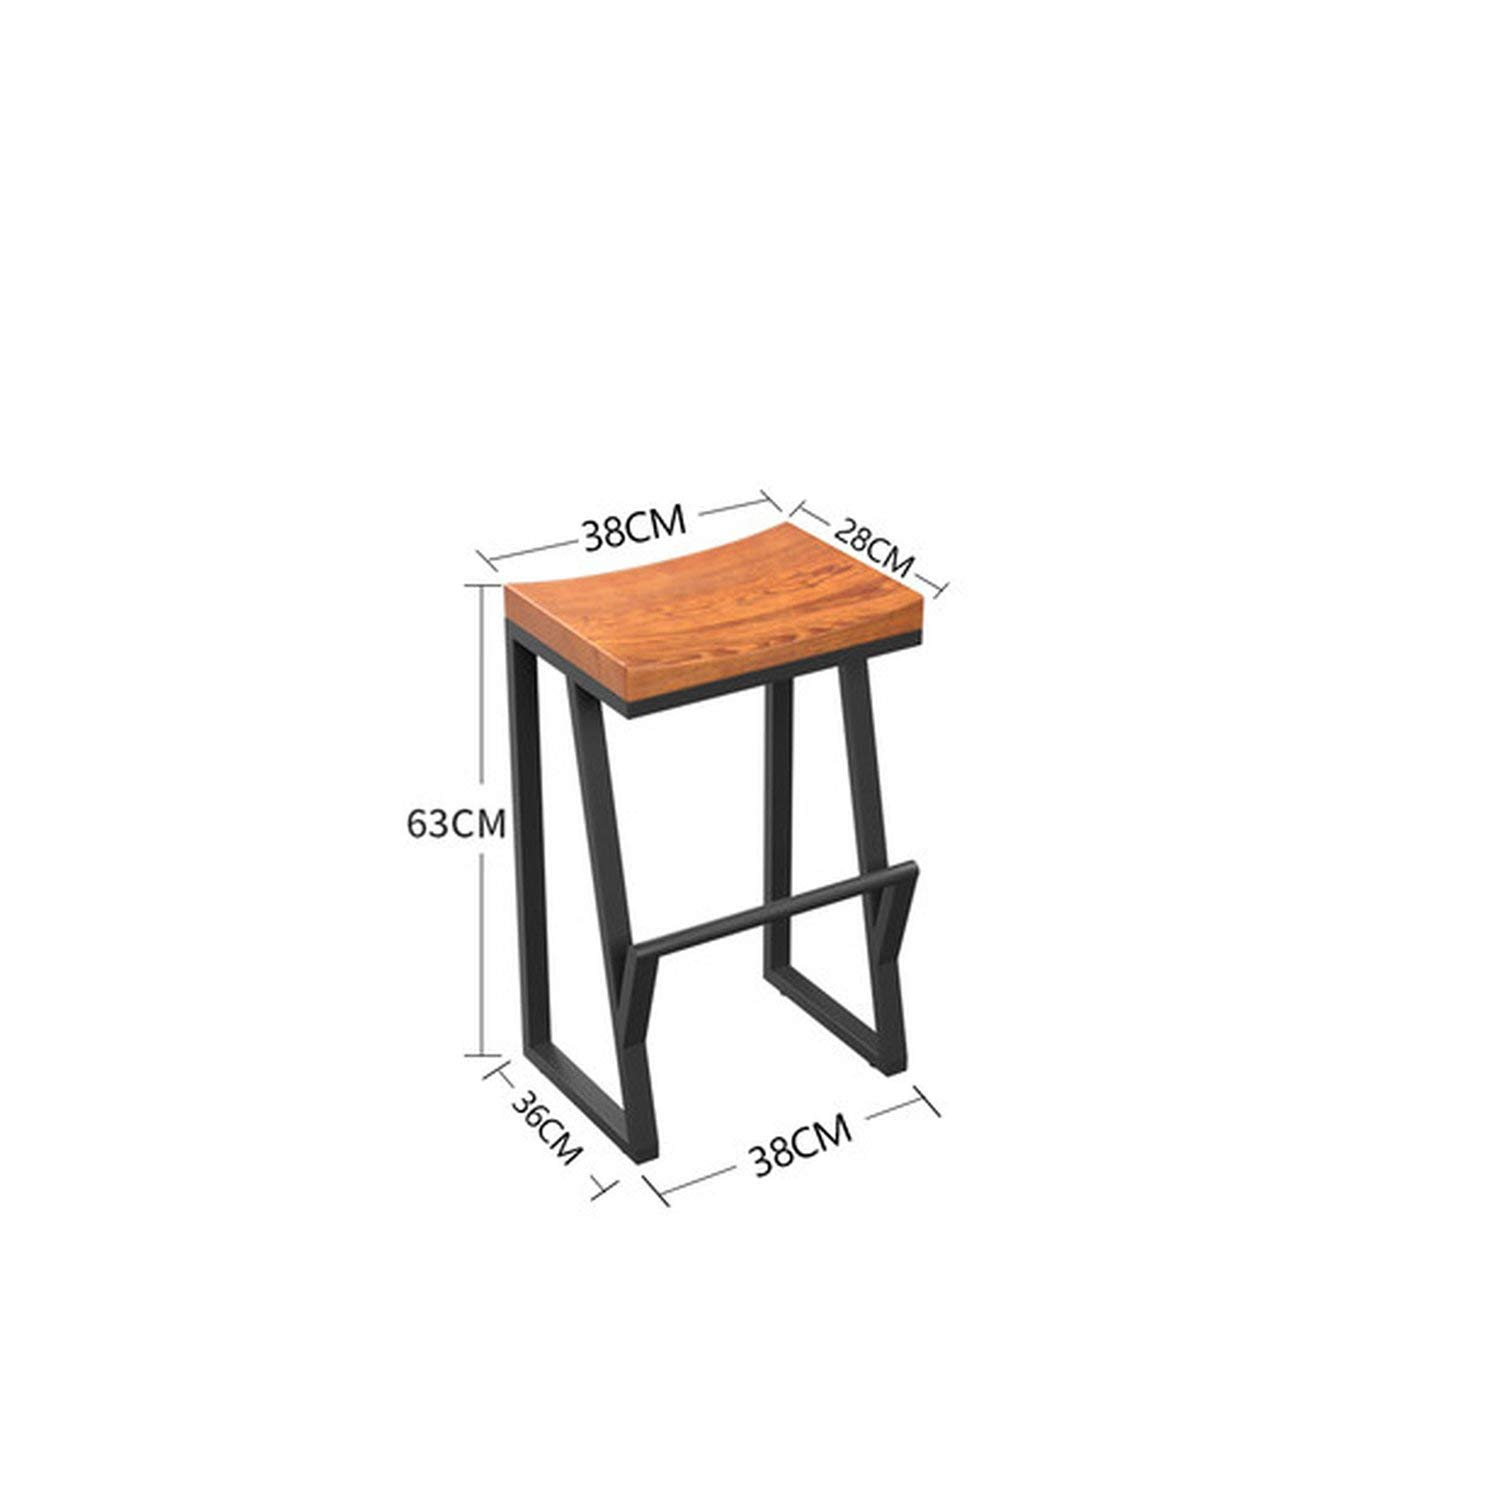 Style 1 tthappy76 10% Retro Bar Chair Wrought Iron Bar Stool Solid Wood Bar Stool Creative High Stool Leisure Bar Chair Front Coffee Chair,Style 3